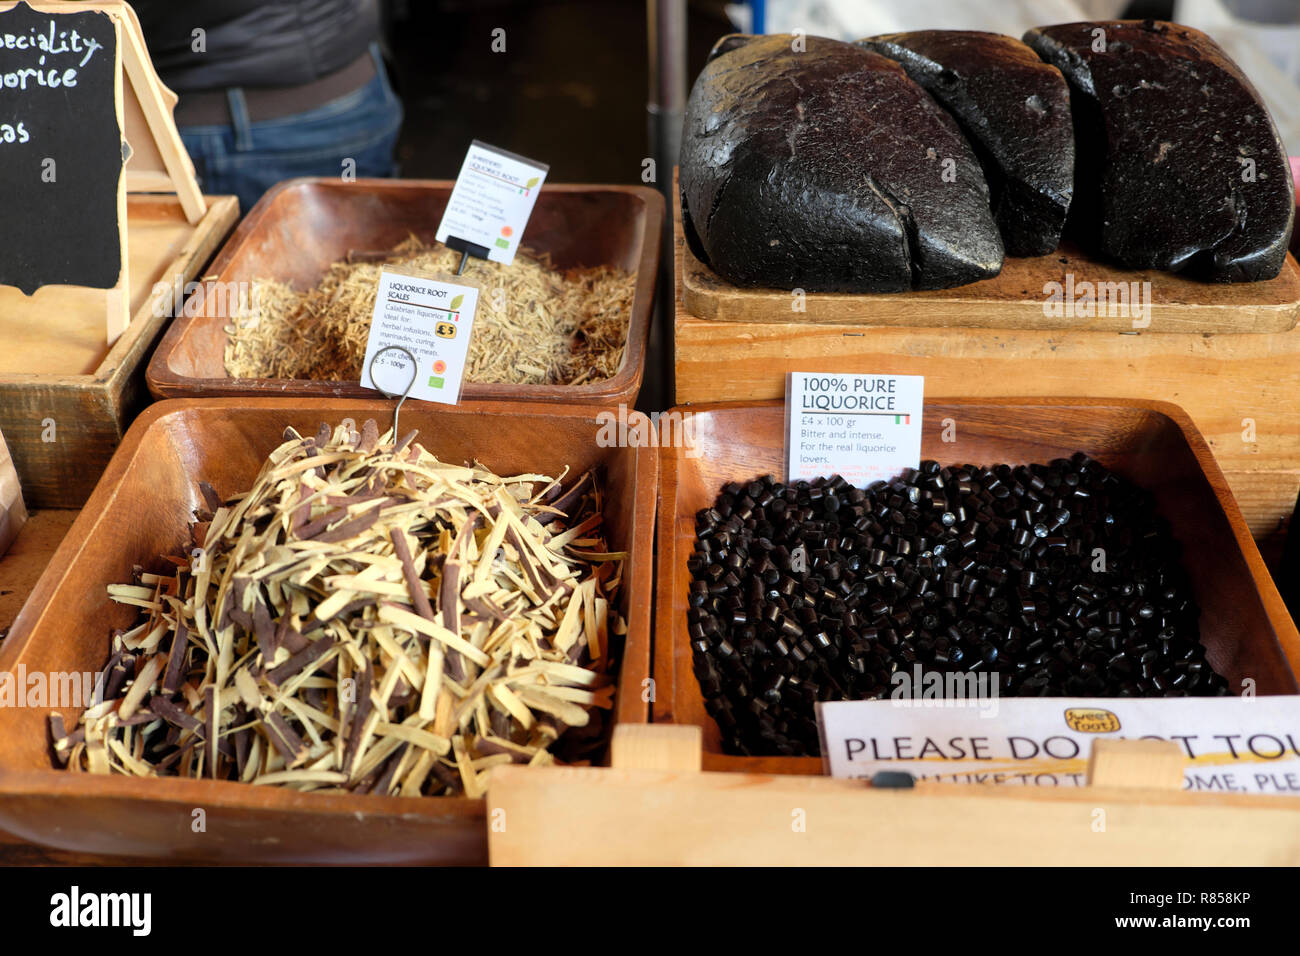 Borough Market Christmas food in London England UK - Stock Image